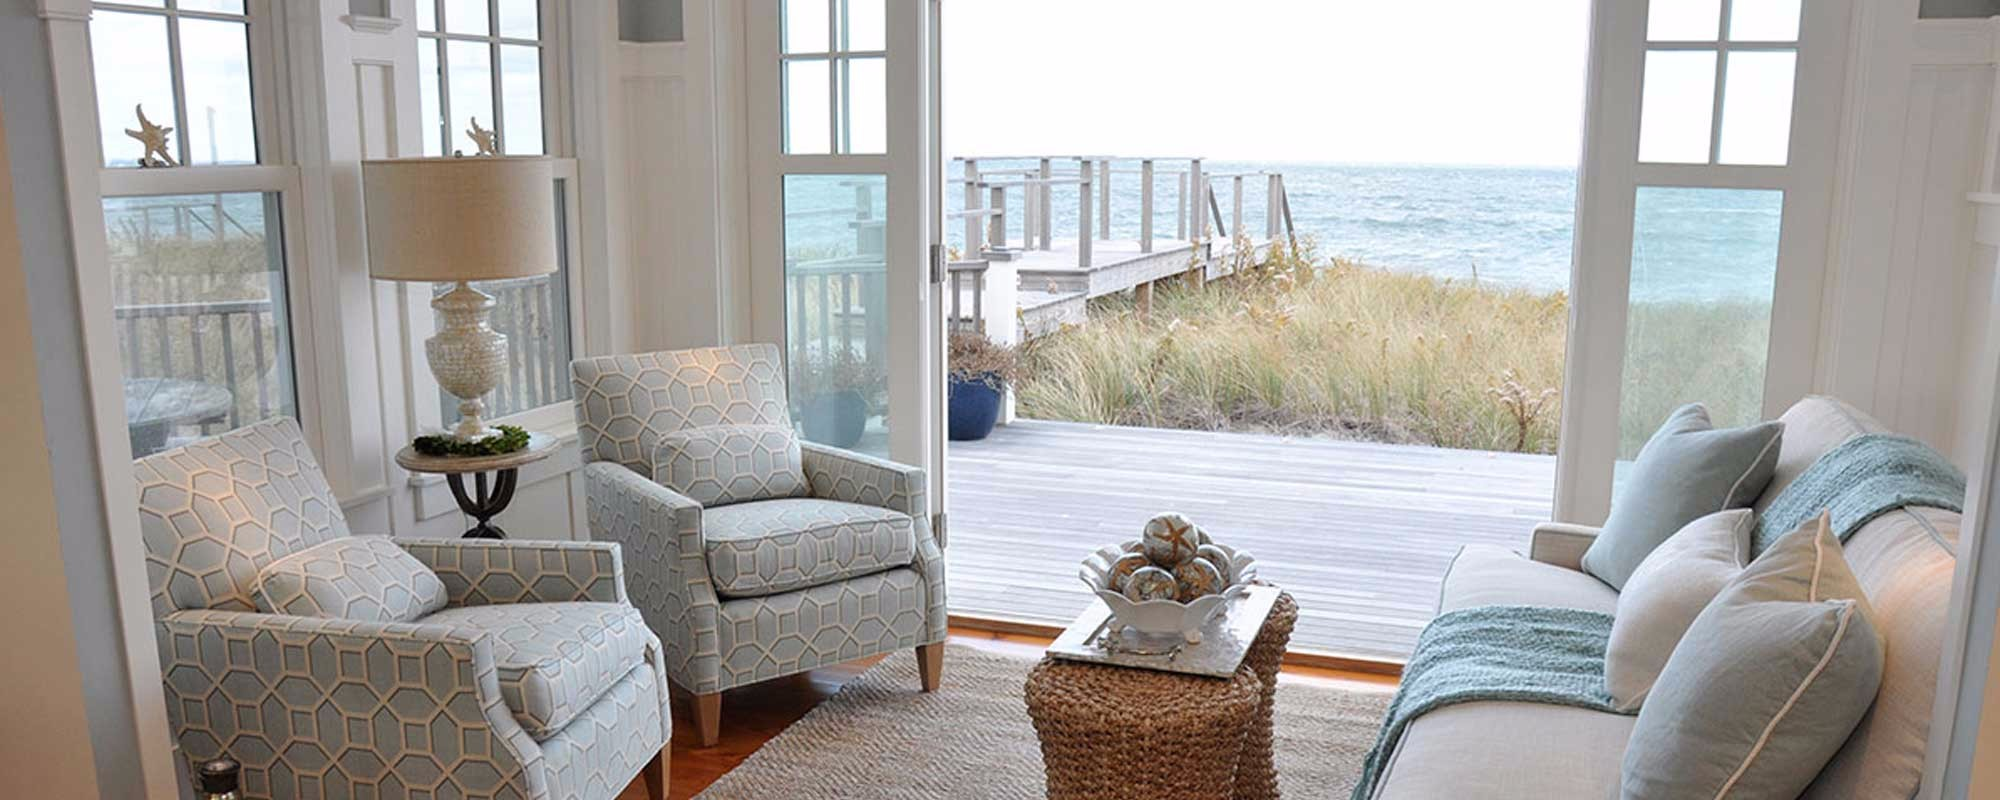 Seaside Interior Design